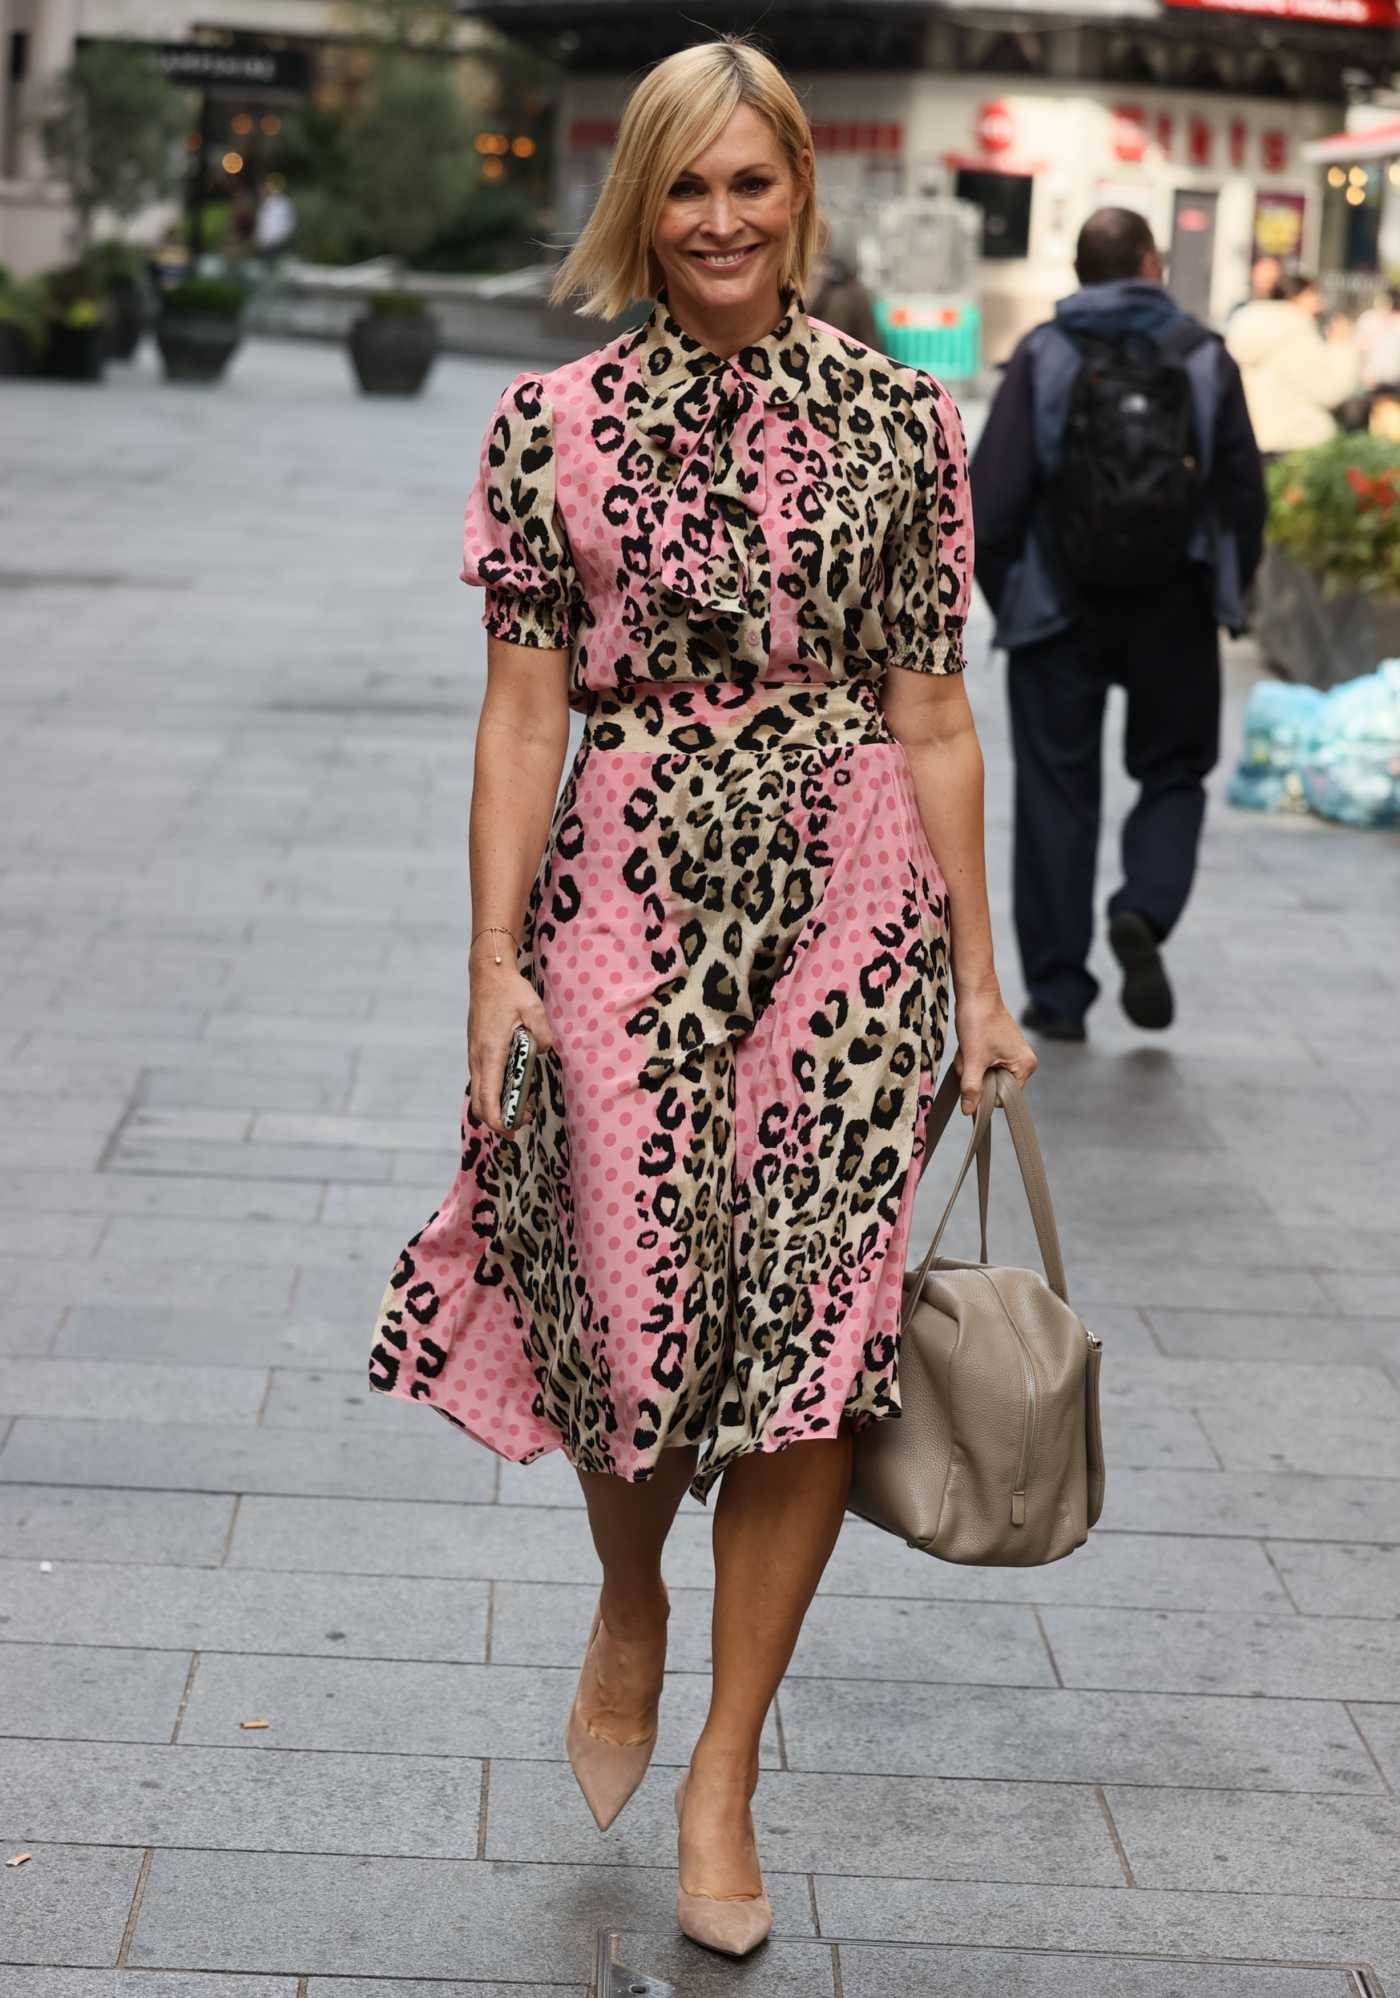 Jenni Falconer in an Animal Print Dress Was Seen Out in London 09/07/2020